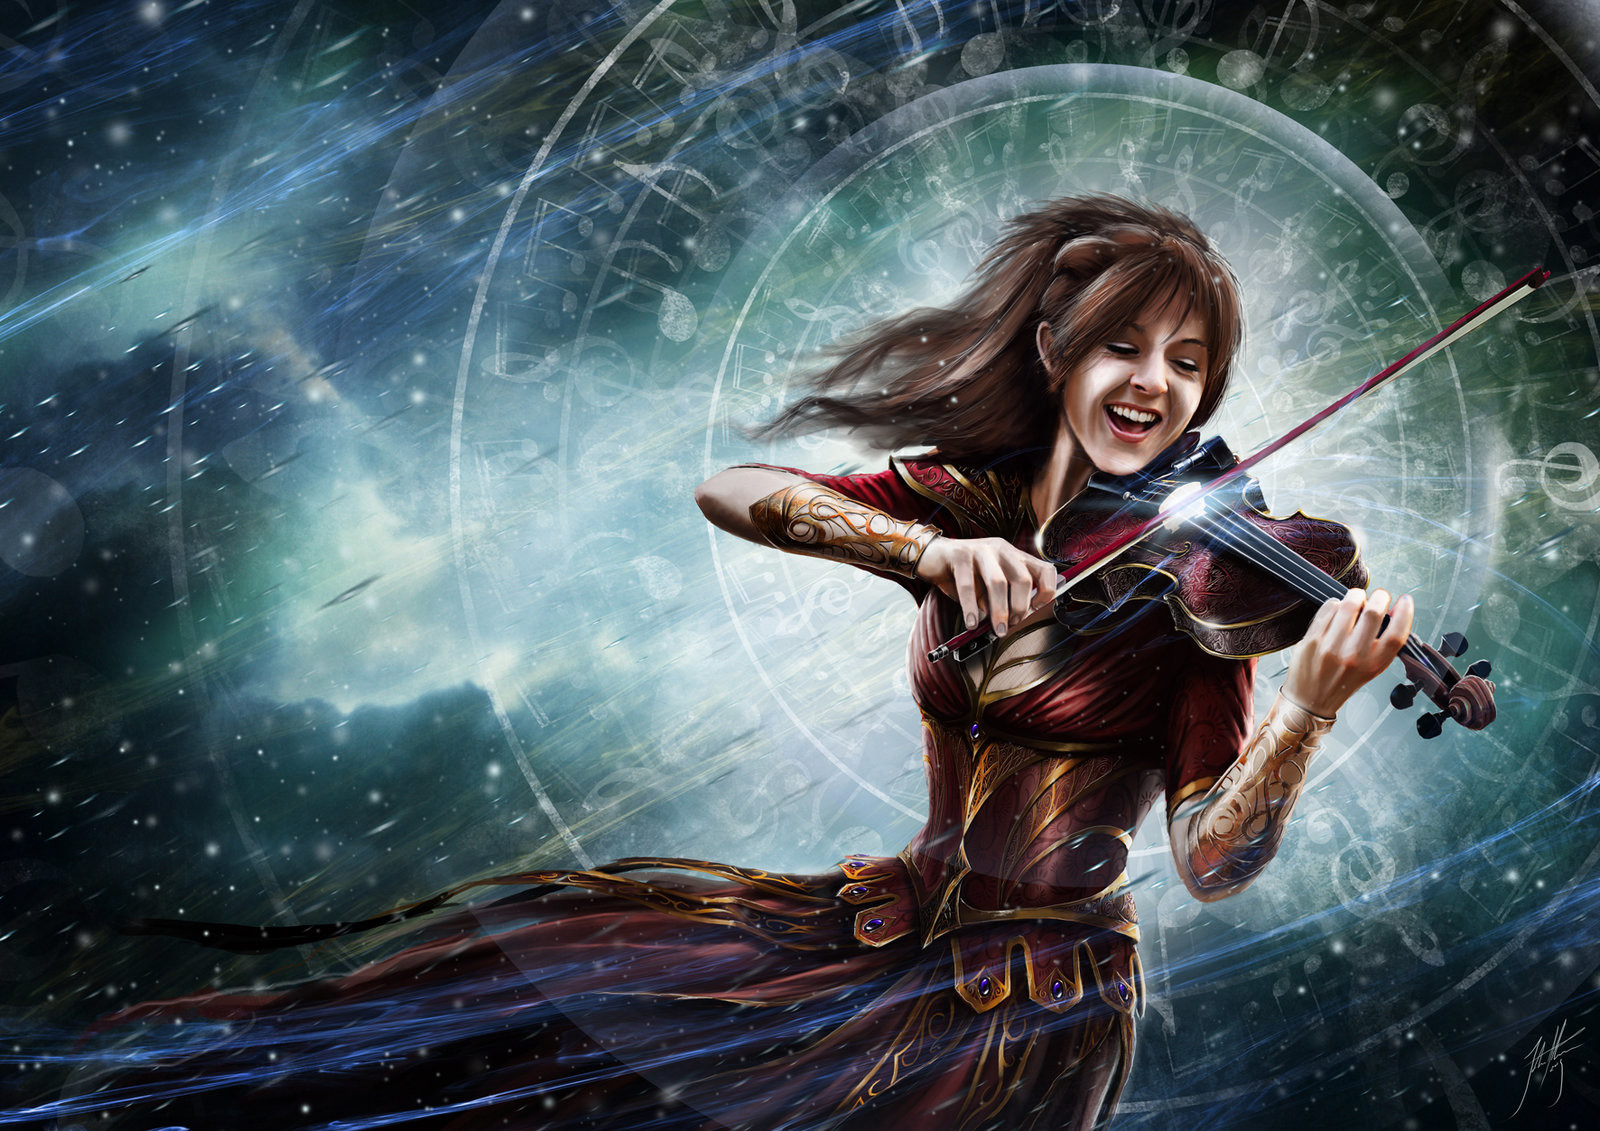 John stone lindsey stirling by john stone art d9l0qgm